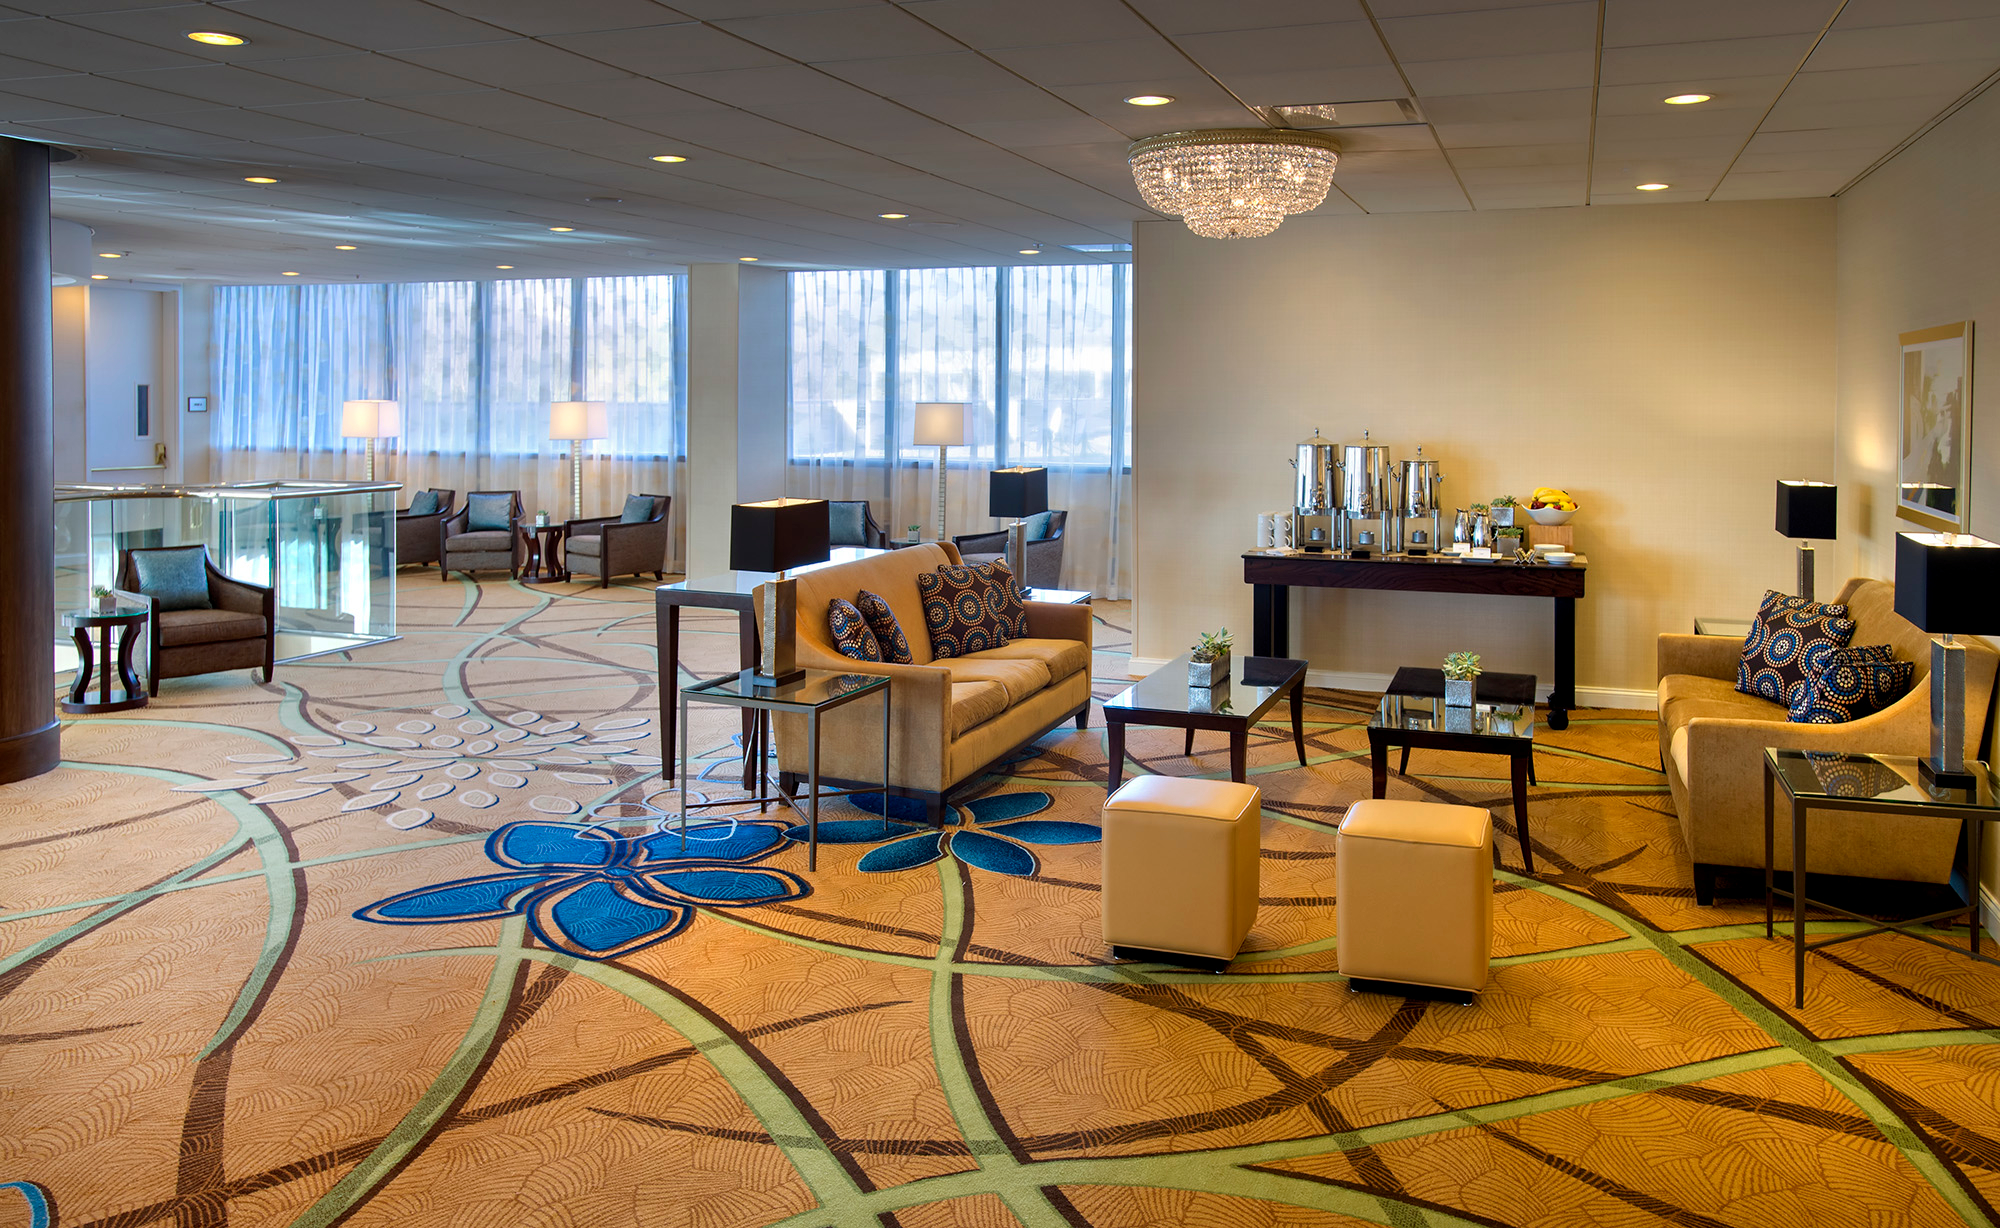 Teaneck Marriott at Glenpointe image 35